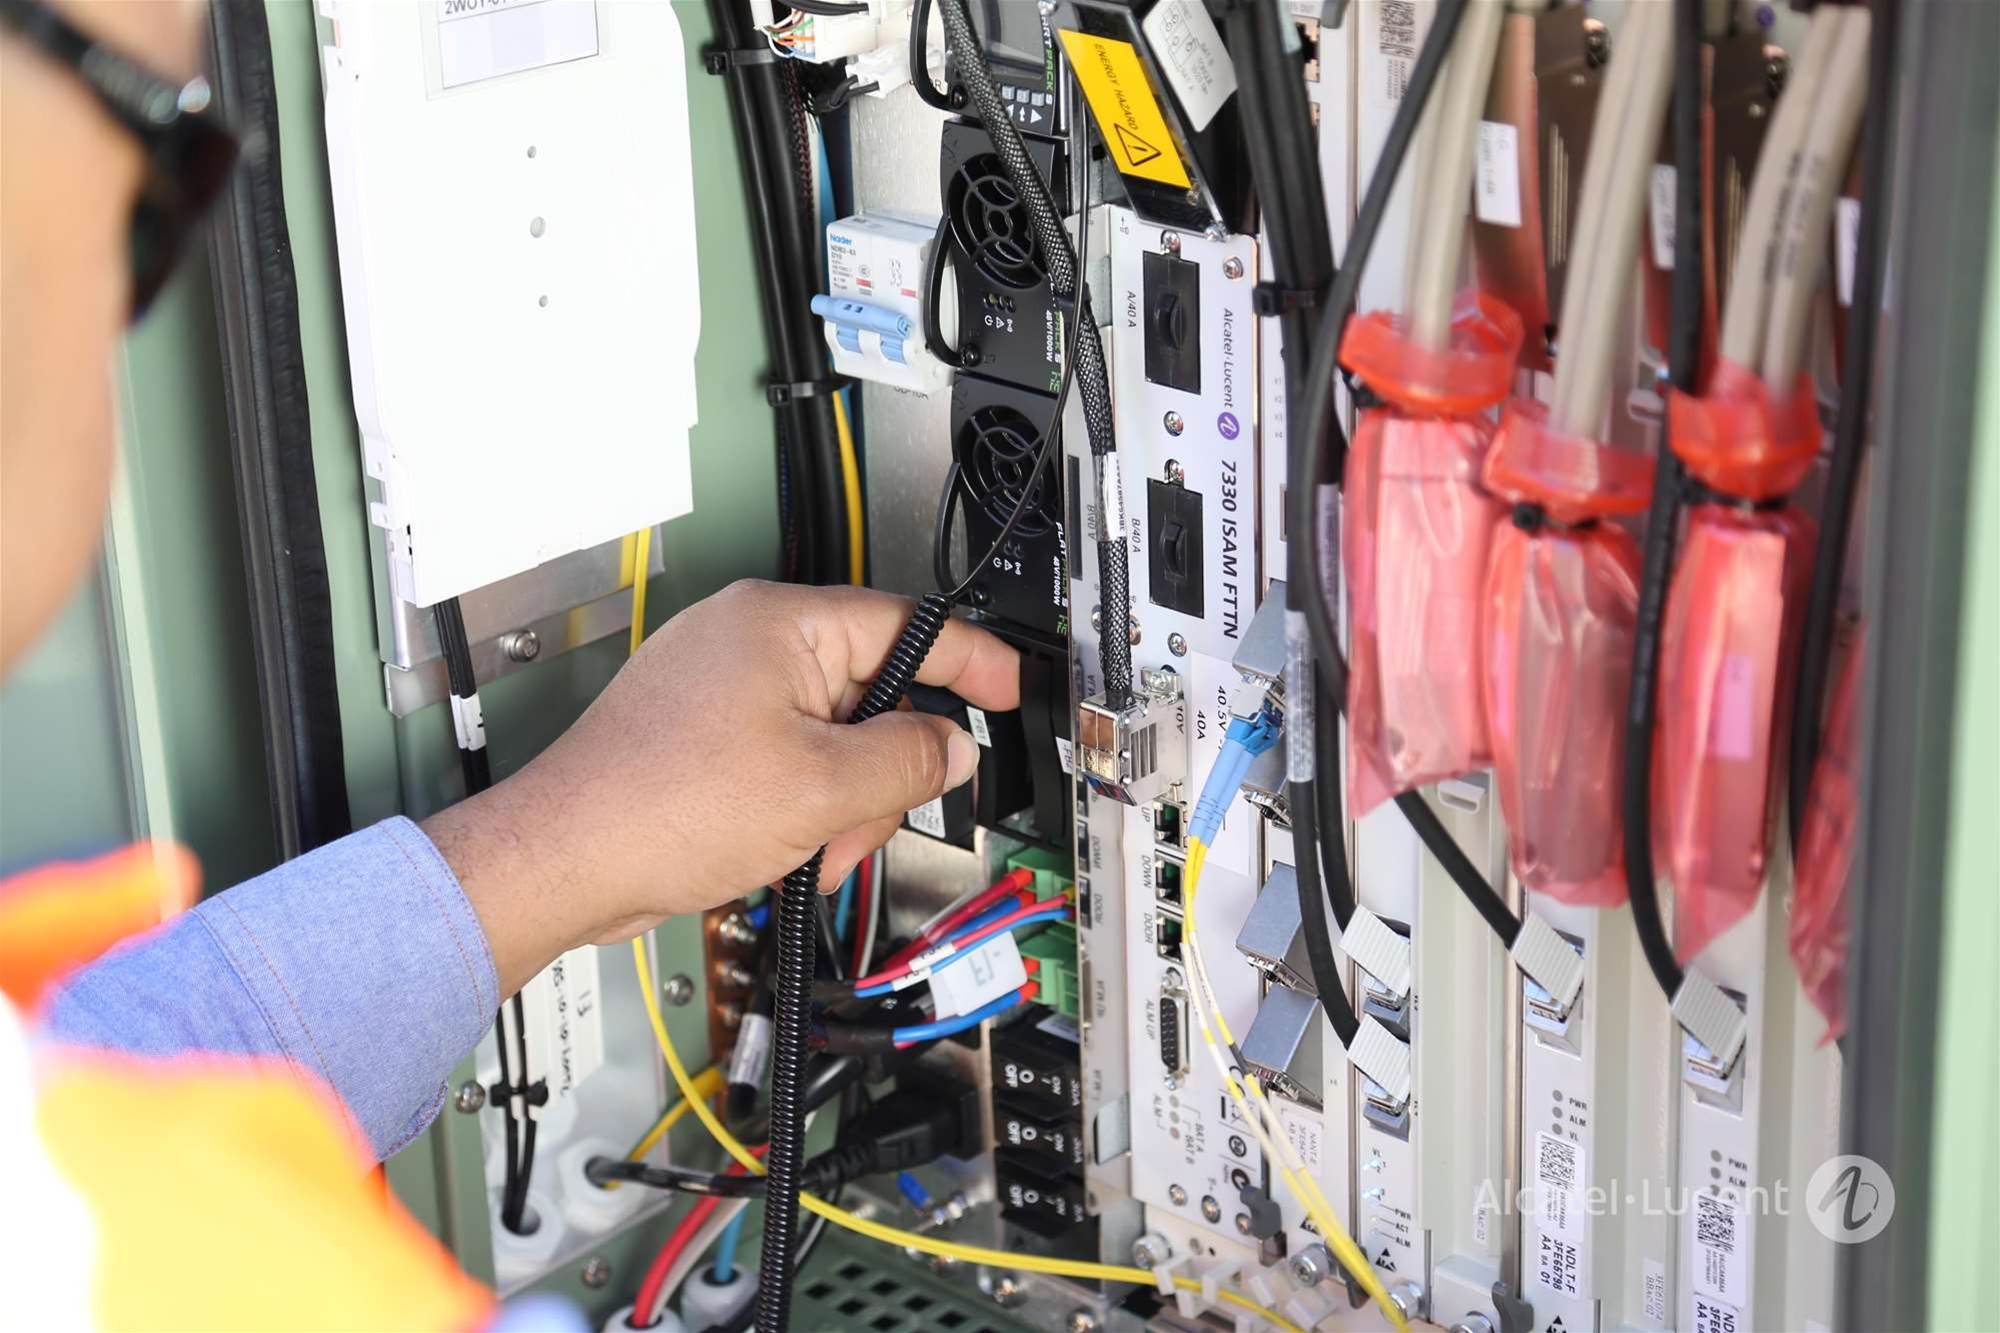 NBN Co says one in four FTTN lines can go over 100Mbps